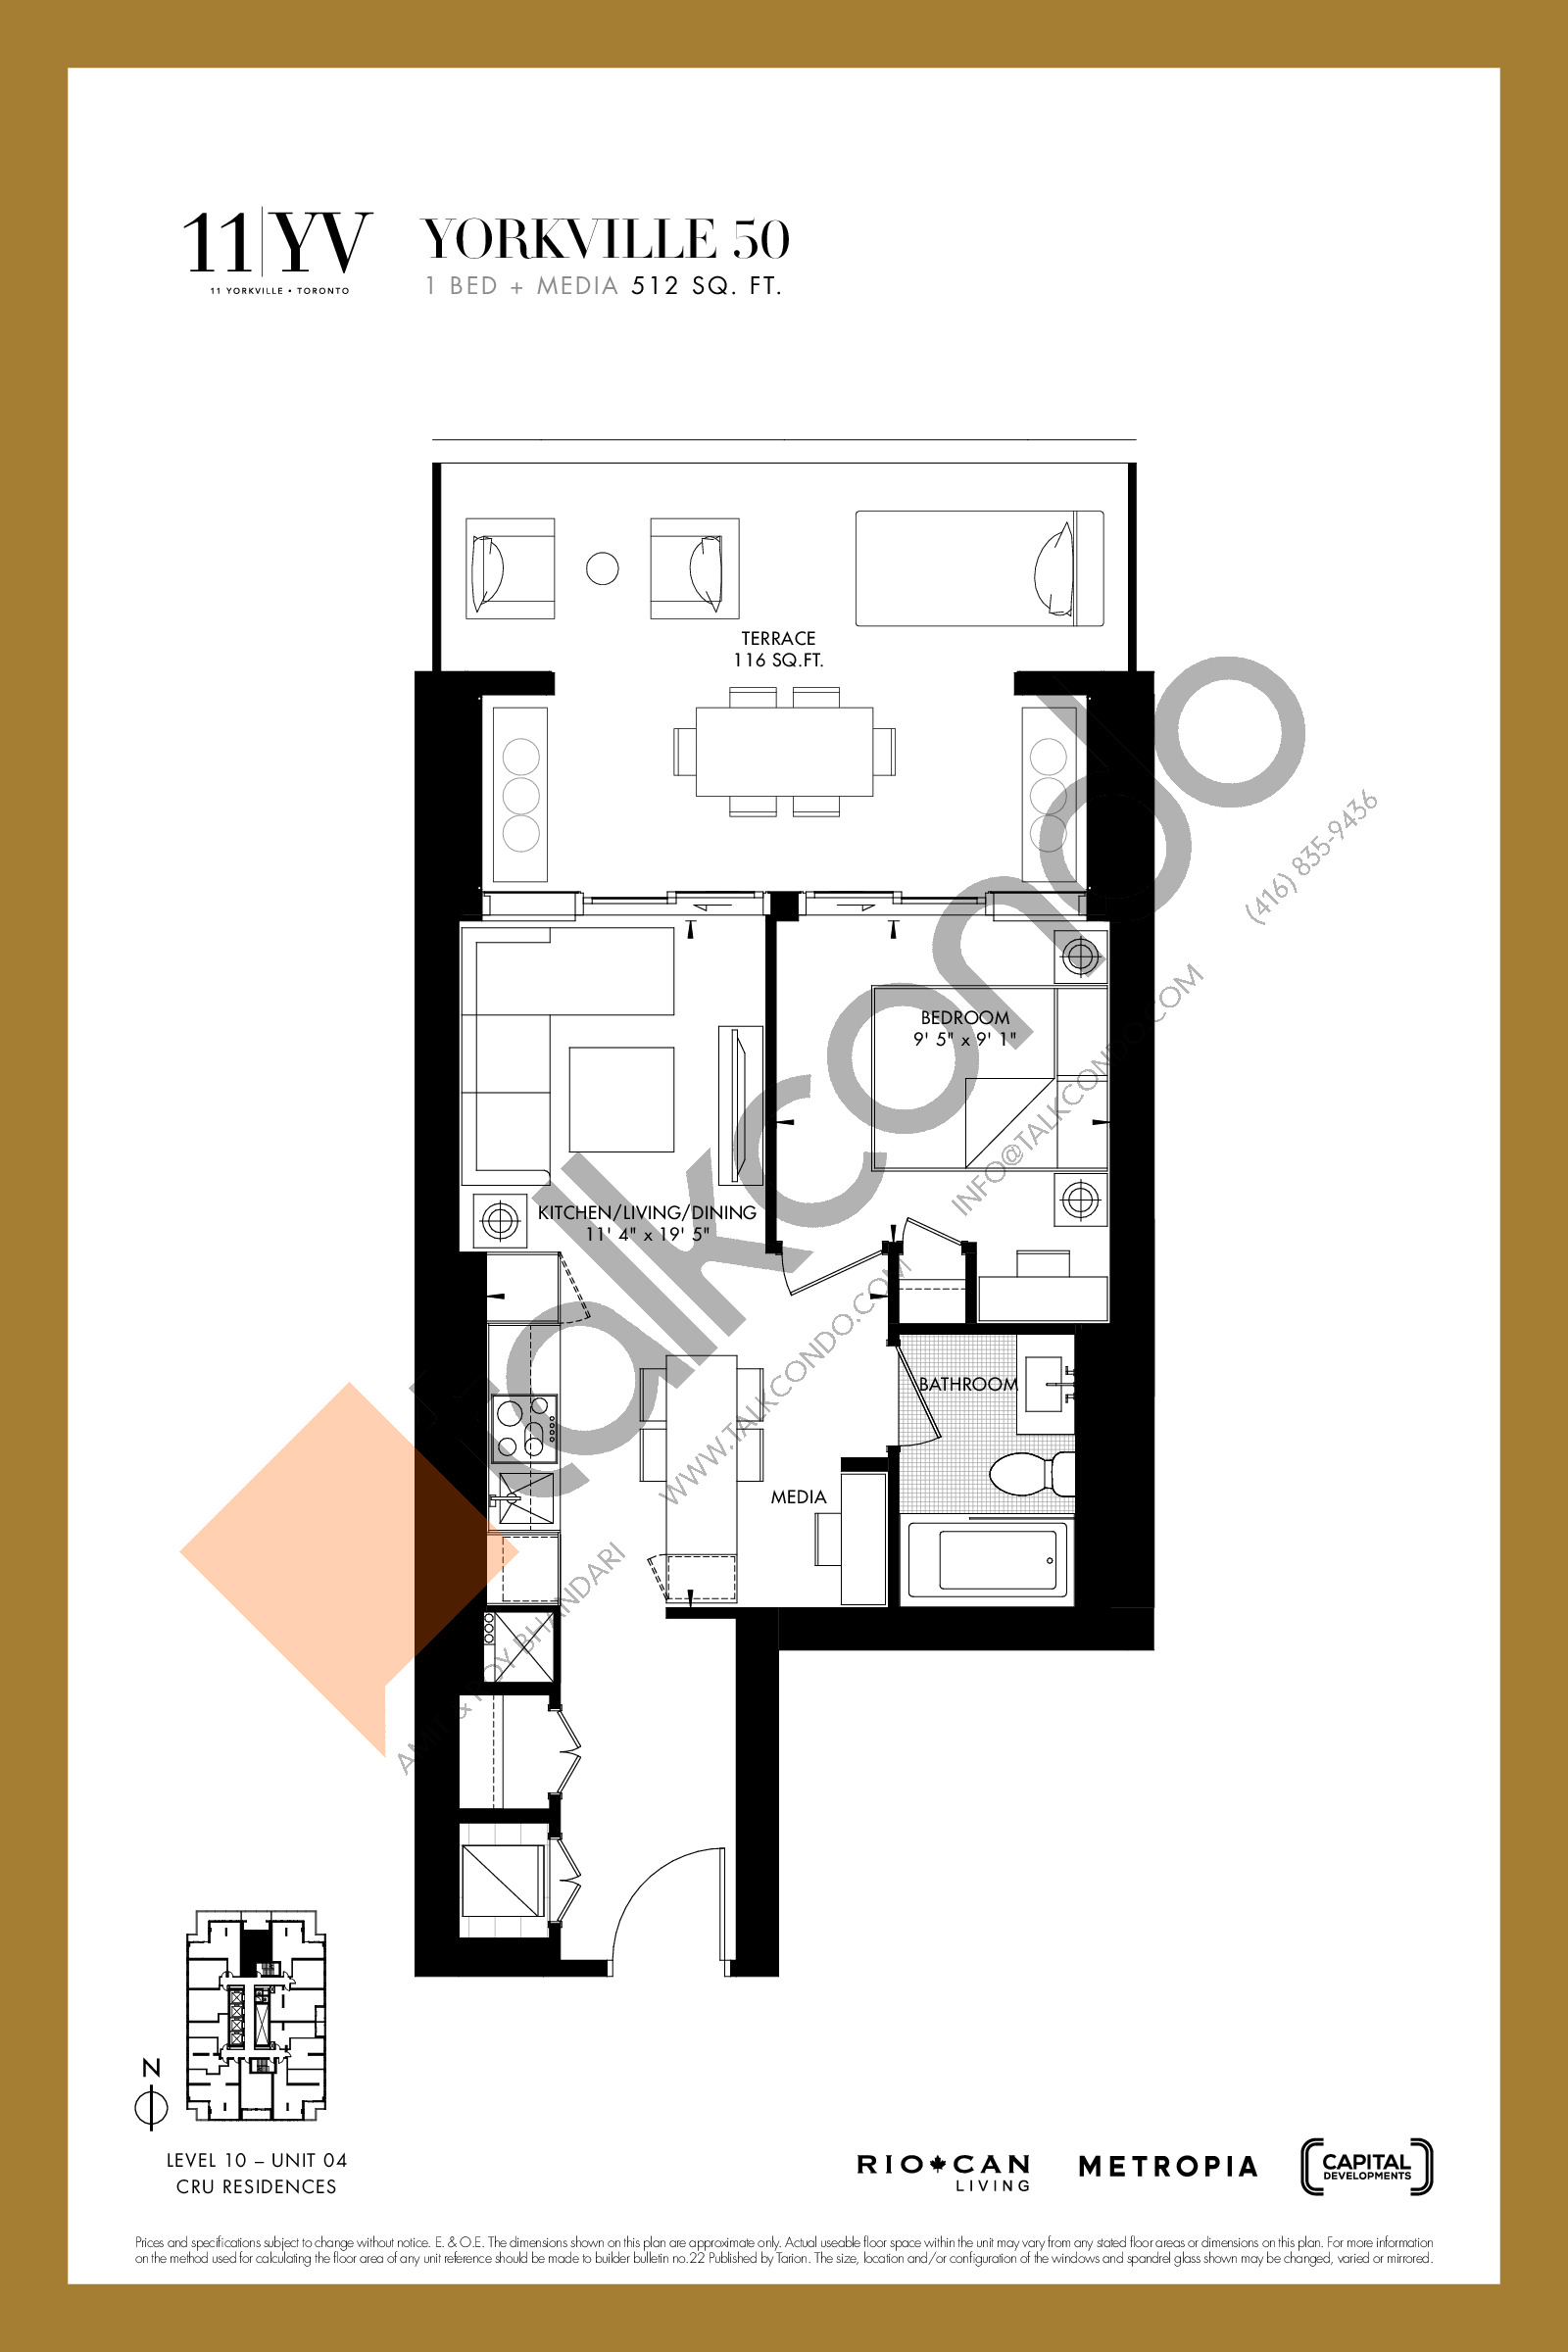 Yorkville 50 Floor Plan at 11YV Condos - 512 sq.ft